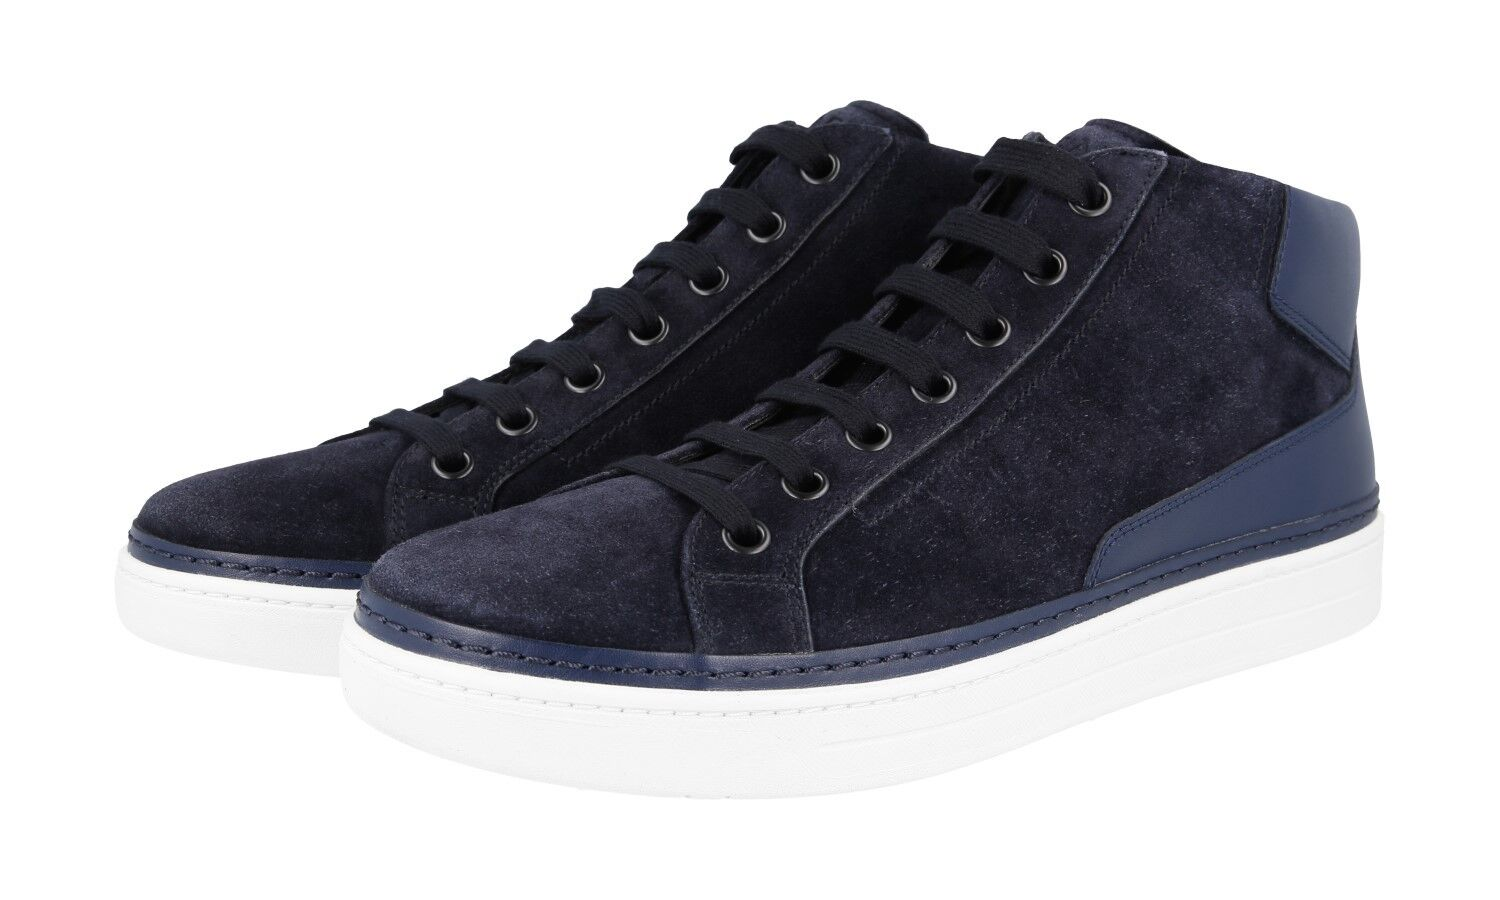 AUTH PRADA HIGH TOP SNEAKERS SHOES 4T2863 blueE SUEDE NEW 10 44 44,5